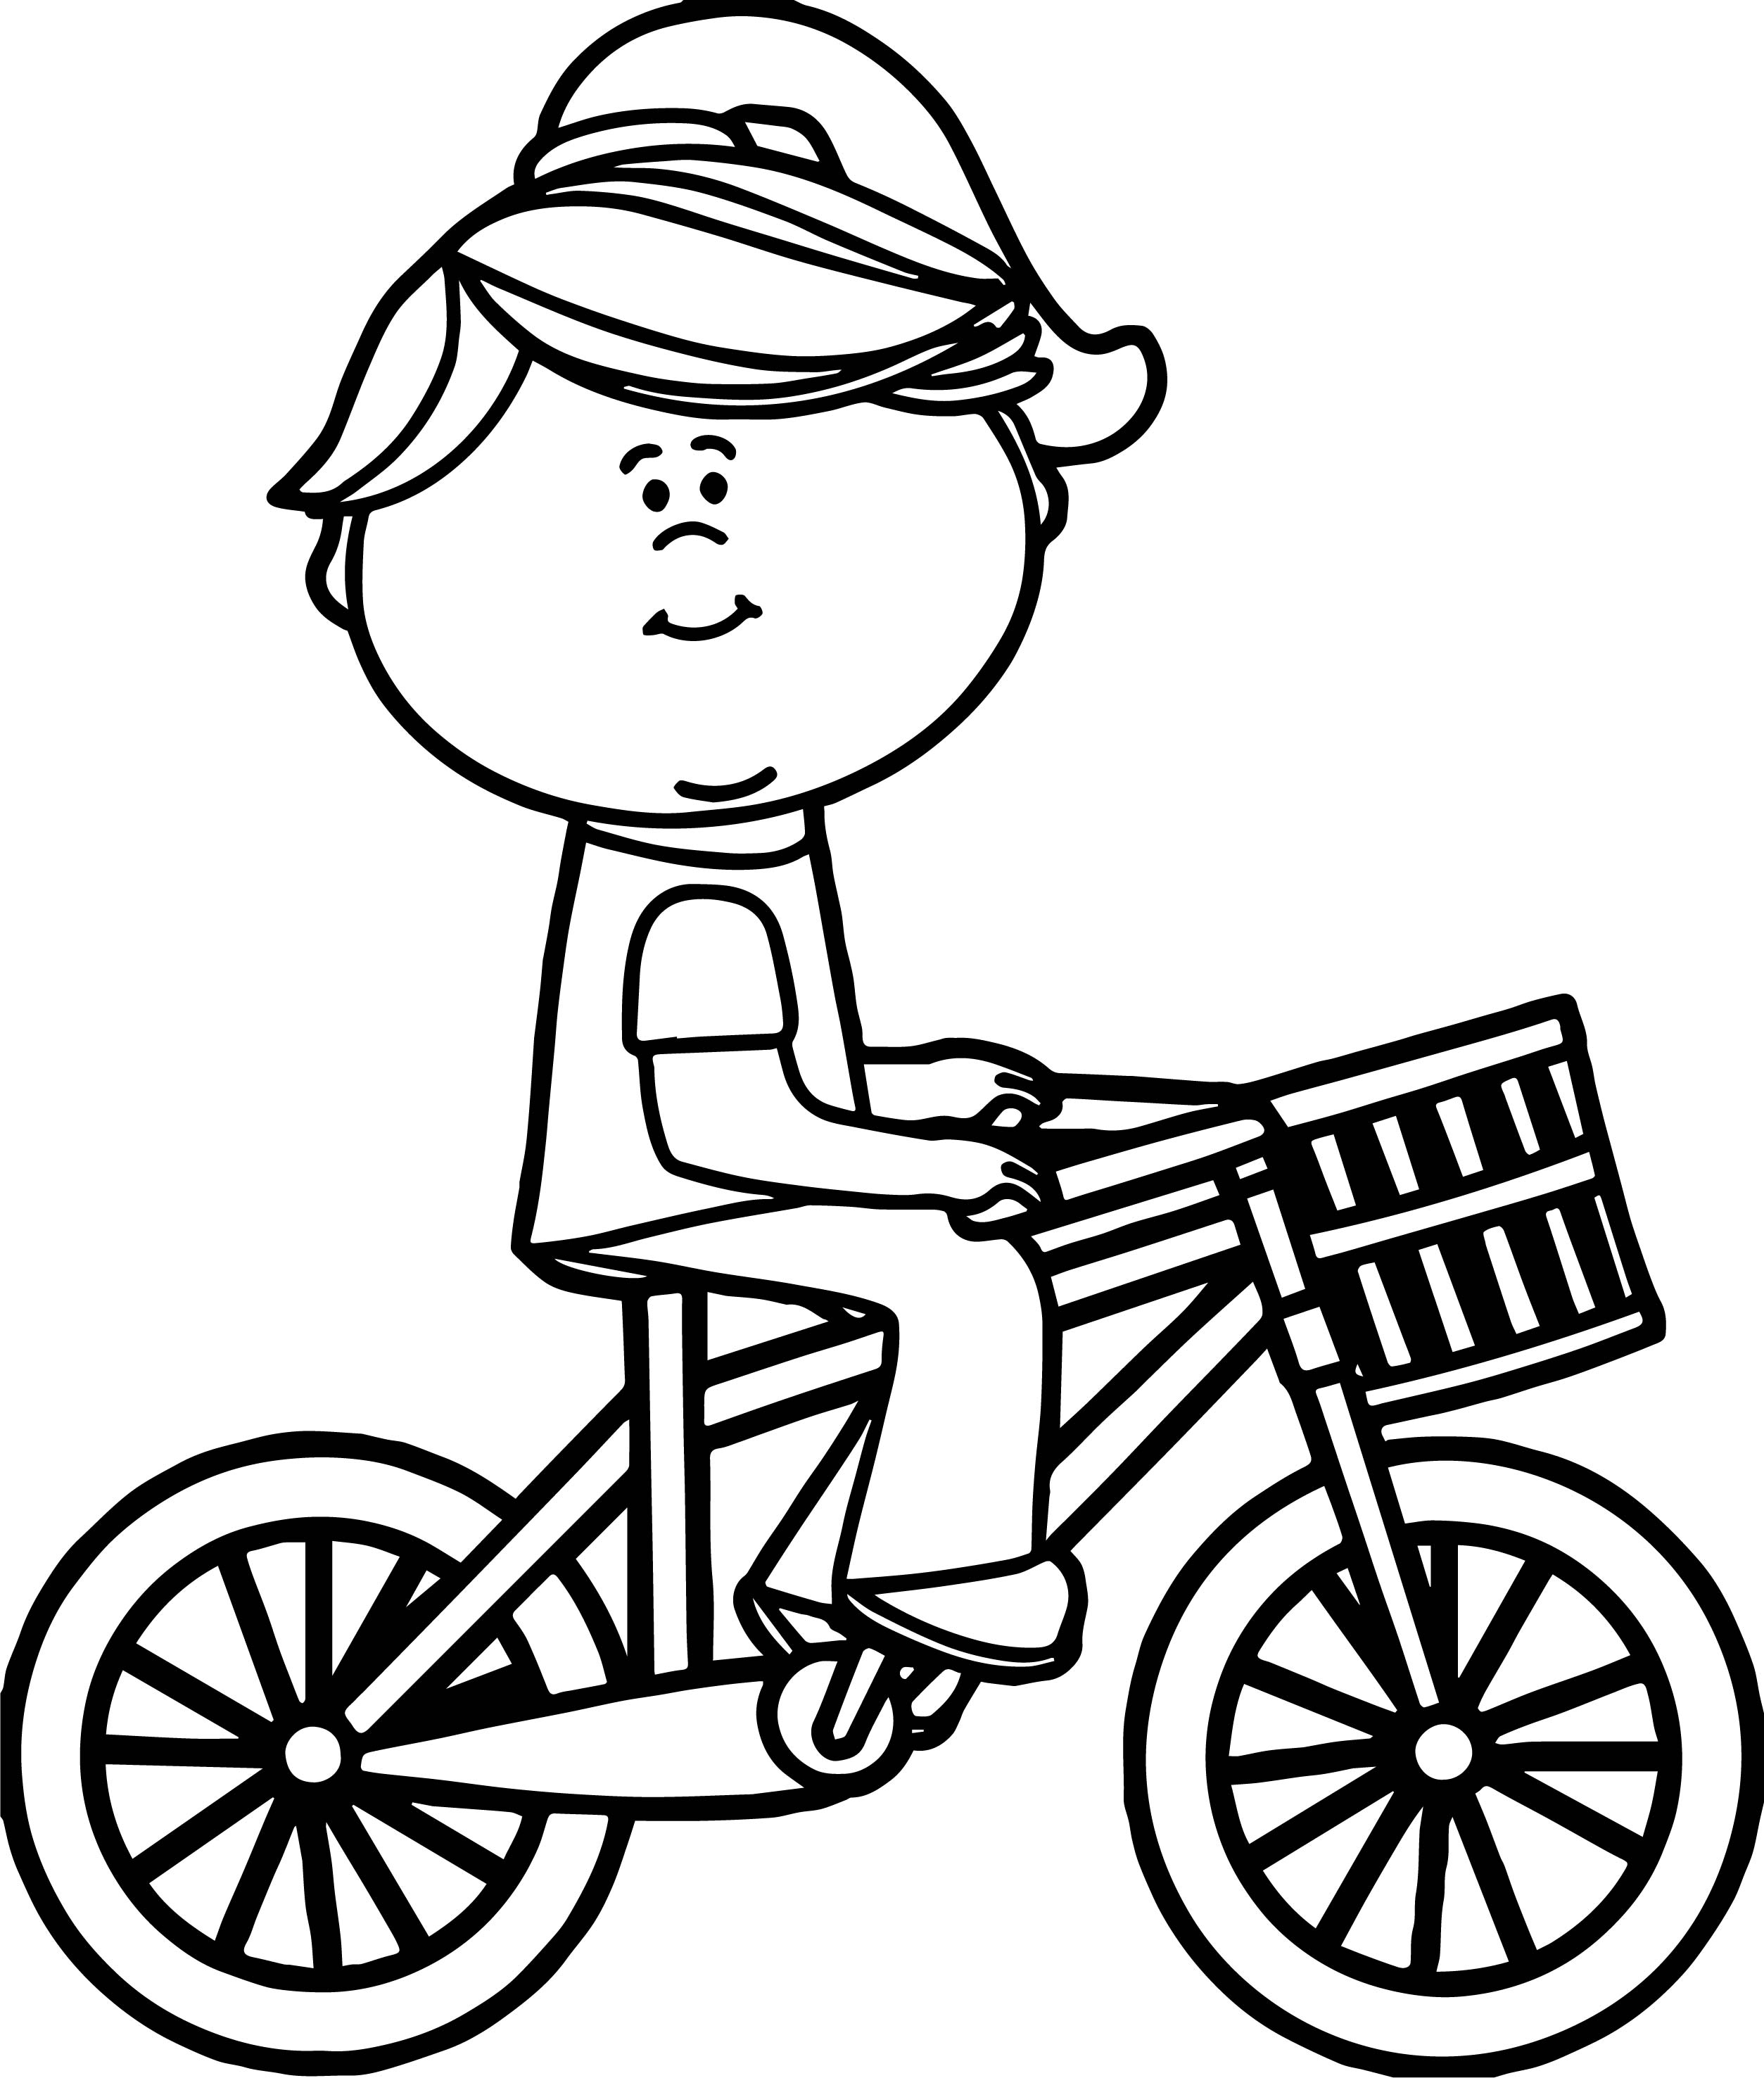 Girl riding bicycle with basket coloring page for Coloring pages bikes